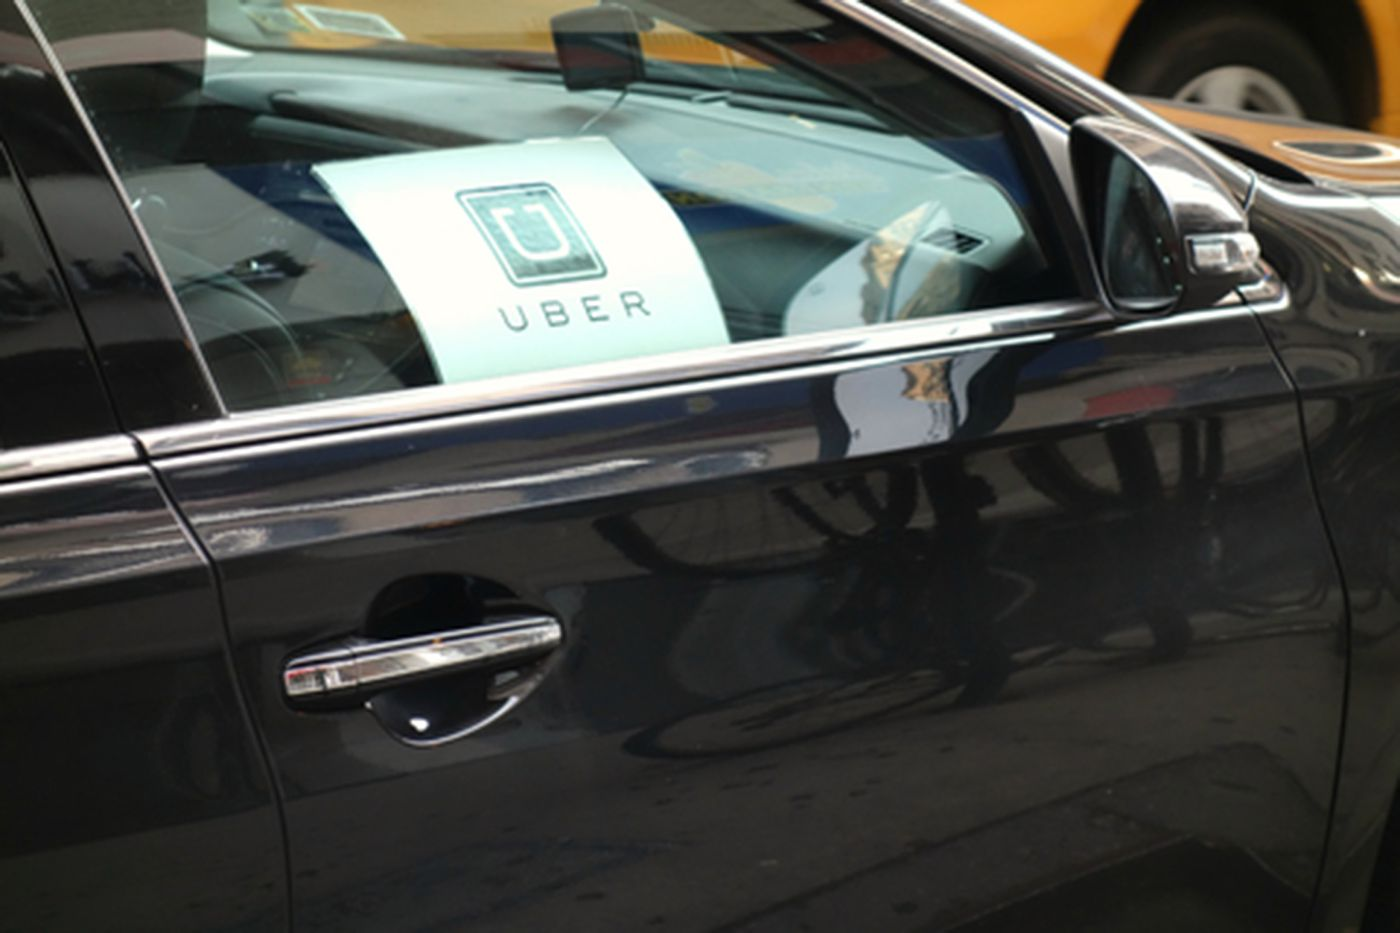 Uber guideline now prohibits broadcasting passenger images